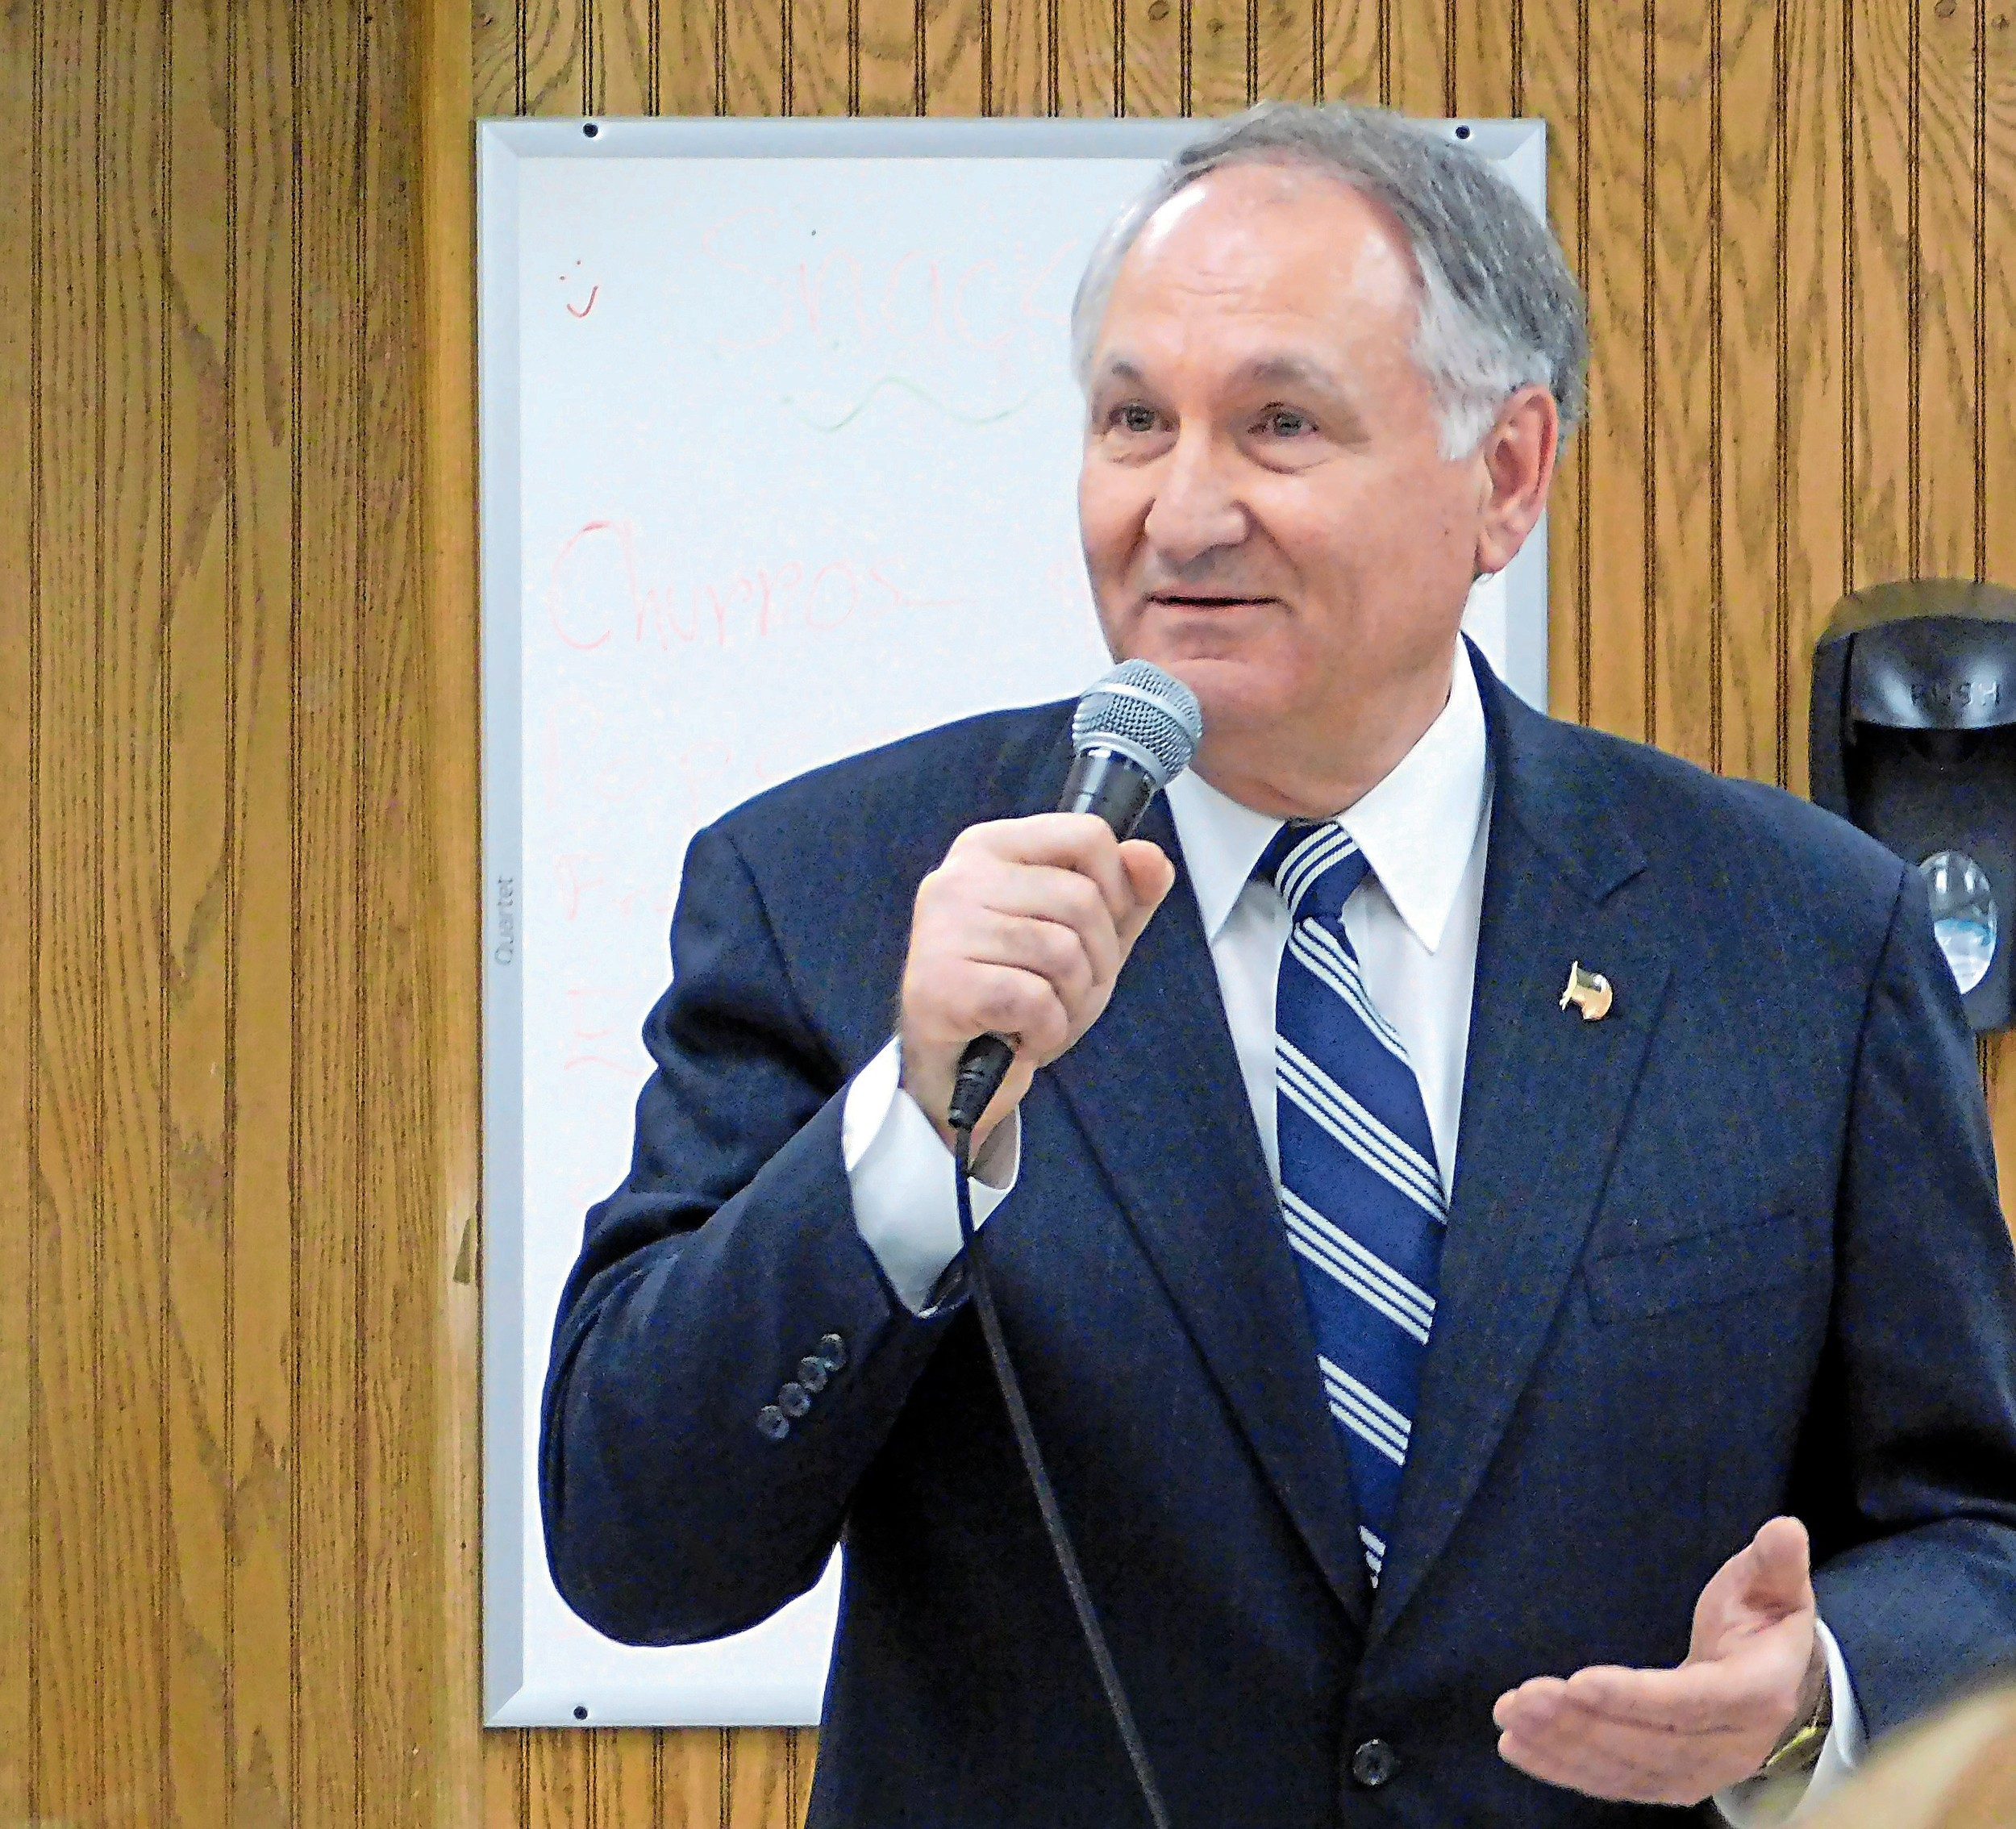 "Nassau County Democratic Committee Chairman Jay Jacobs on Monday went after county comptroller and Democratic candidate for county executive George Maragos, pictured, in an open letter headlined ""Why I chose not to endorse George Maragos for county executive."""